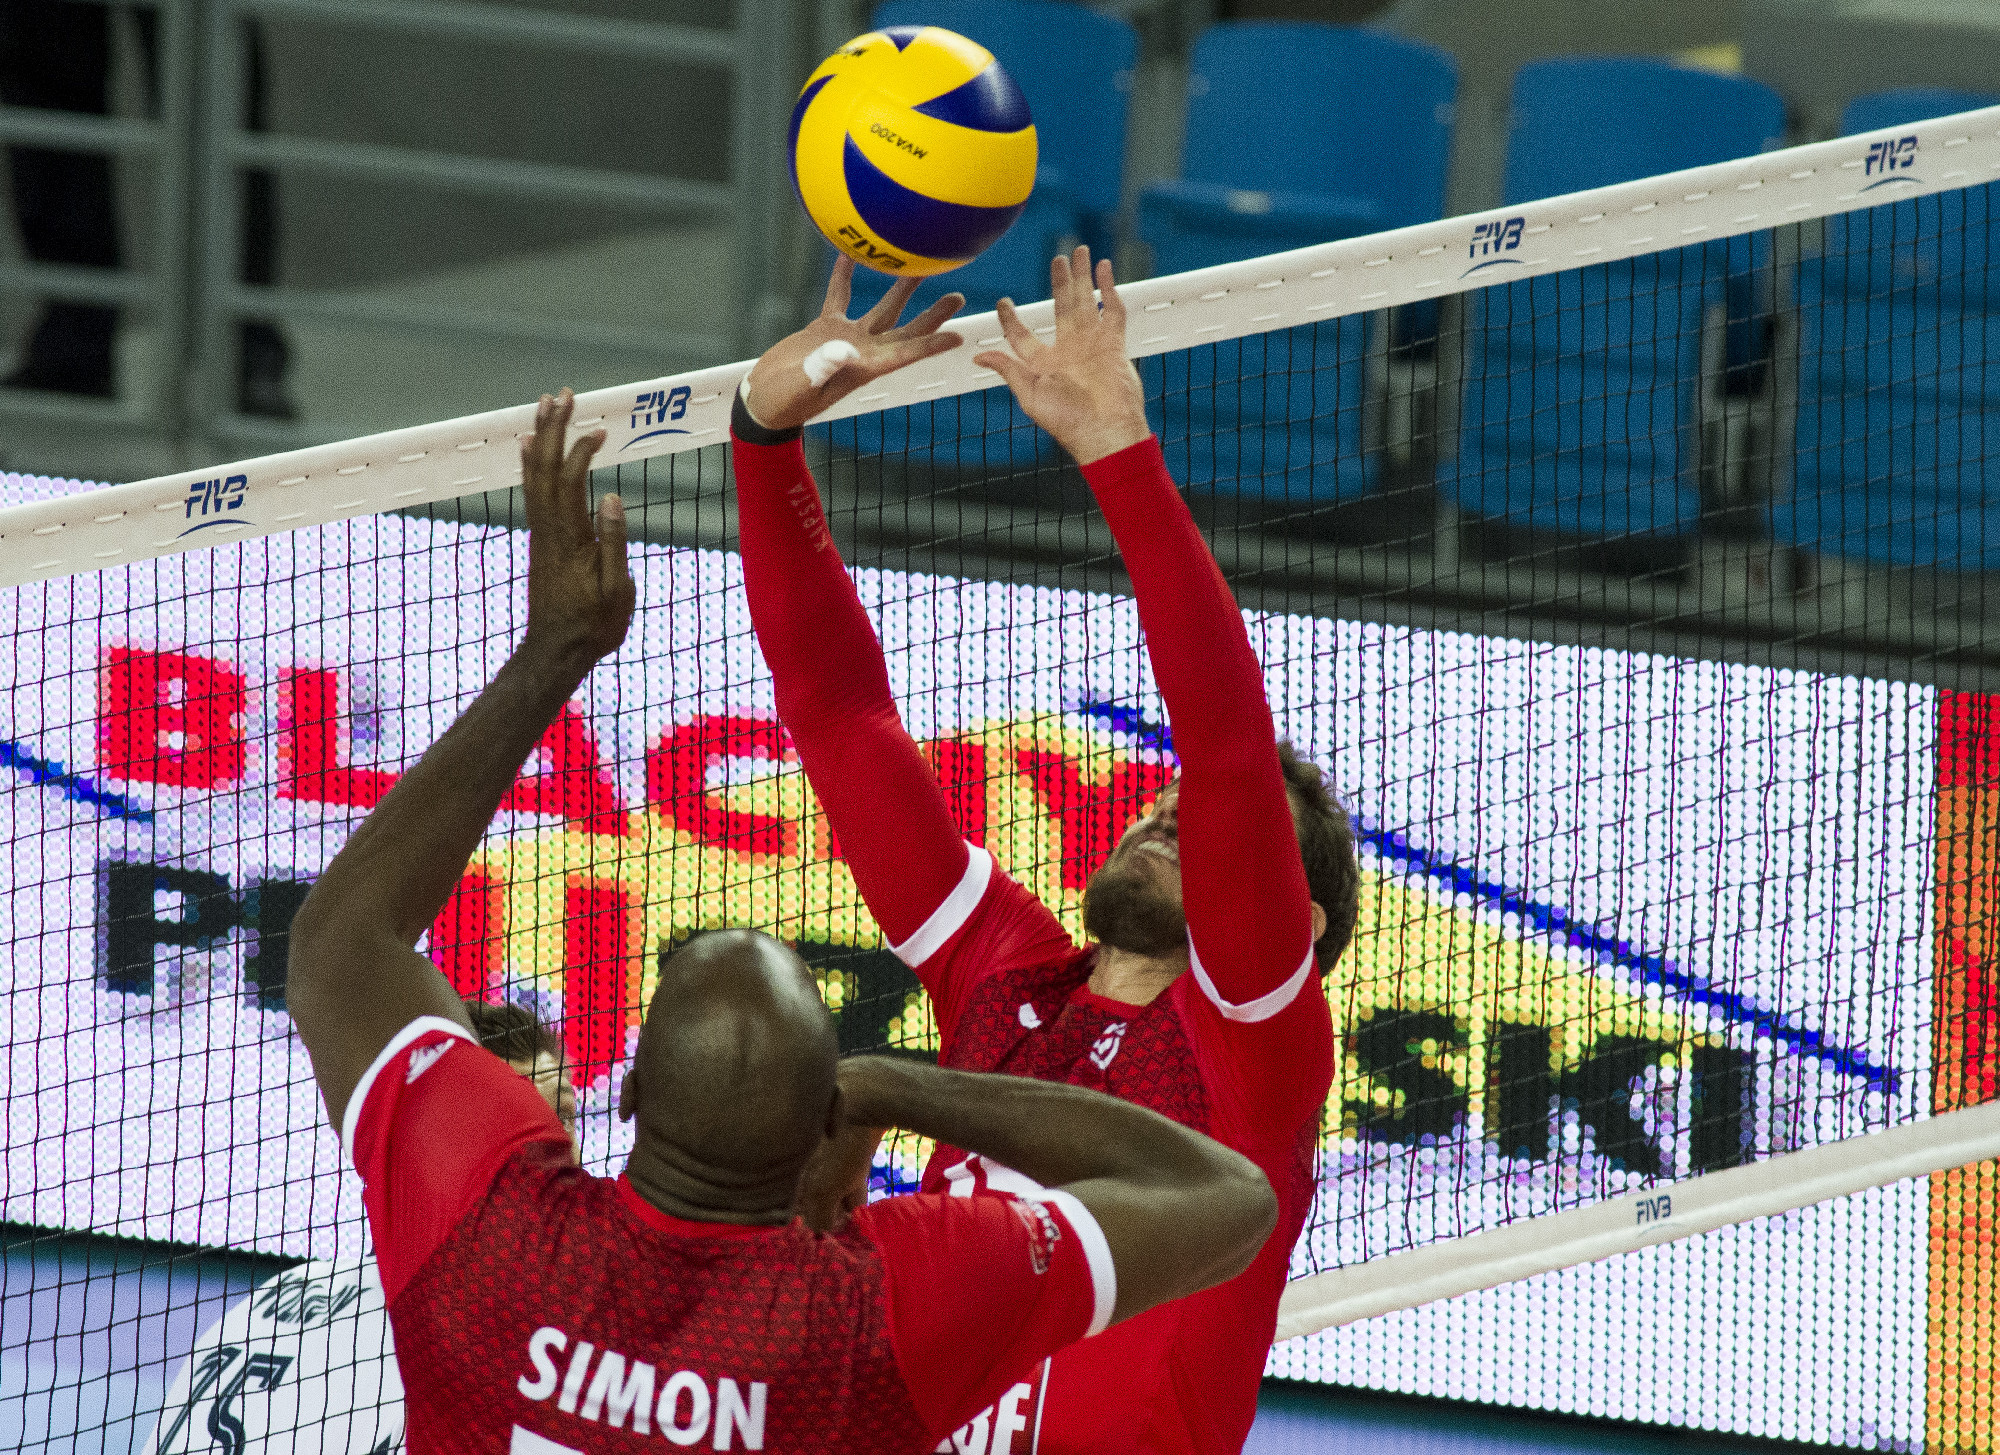 Volley: al Mondiale per club finale tutta italiana